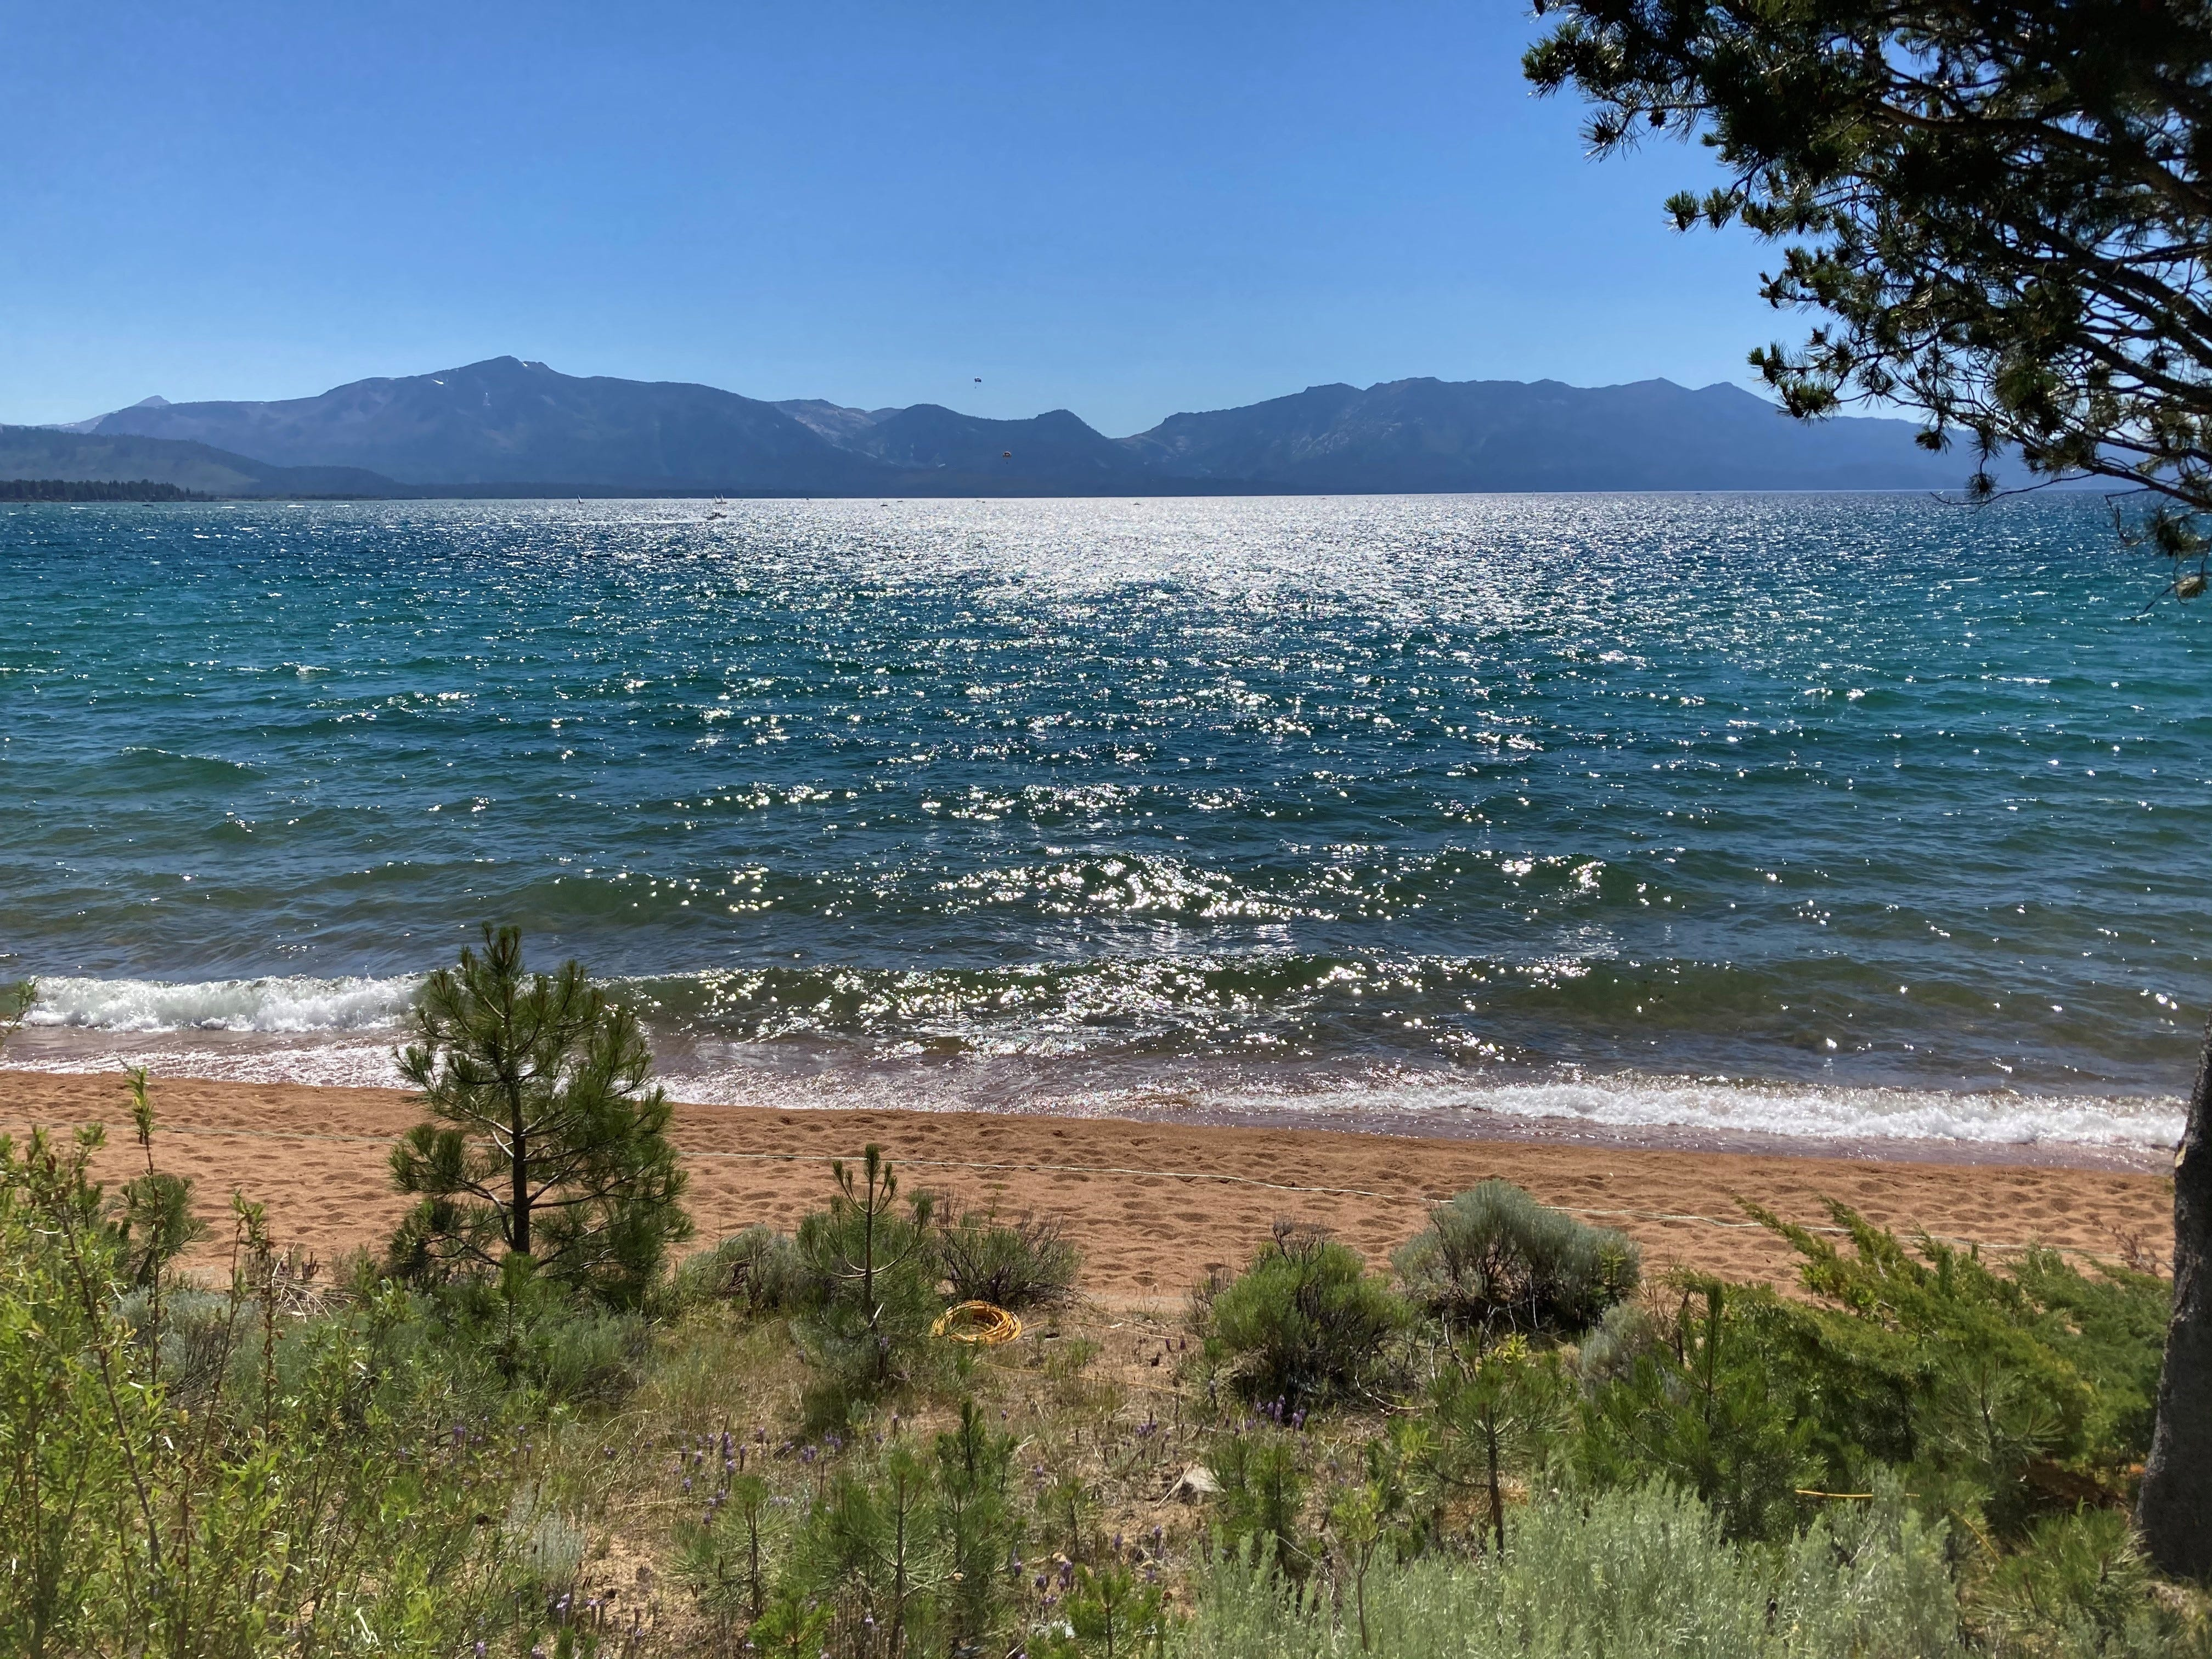 Lake Tahoe  tragedy : Woman drowns after falling off boat, man hospitalized with hypothermia, 6 children rescued